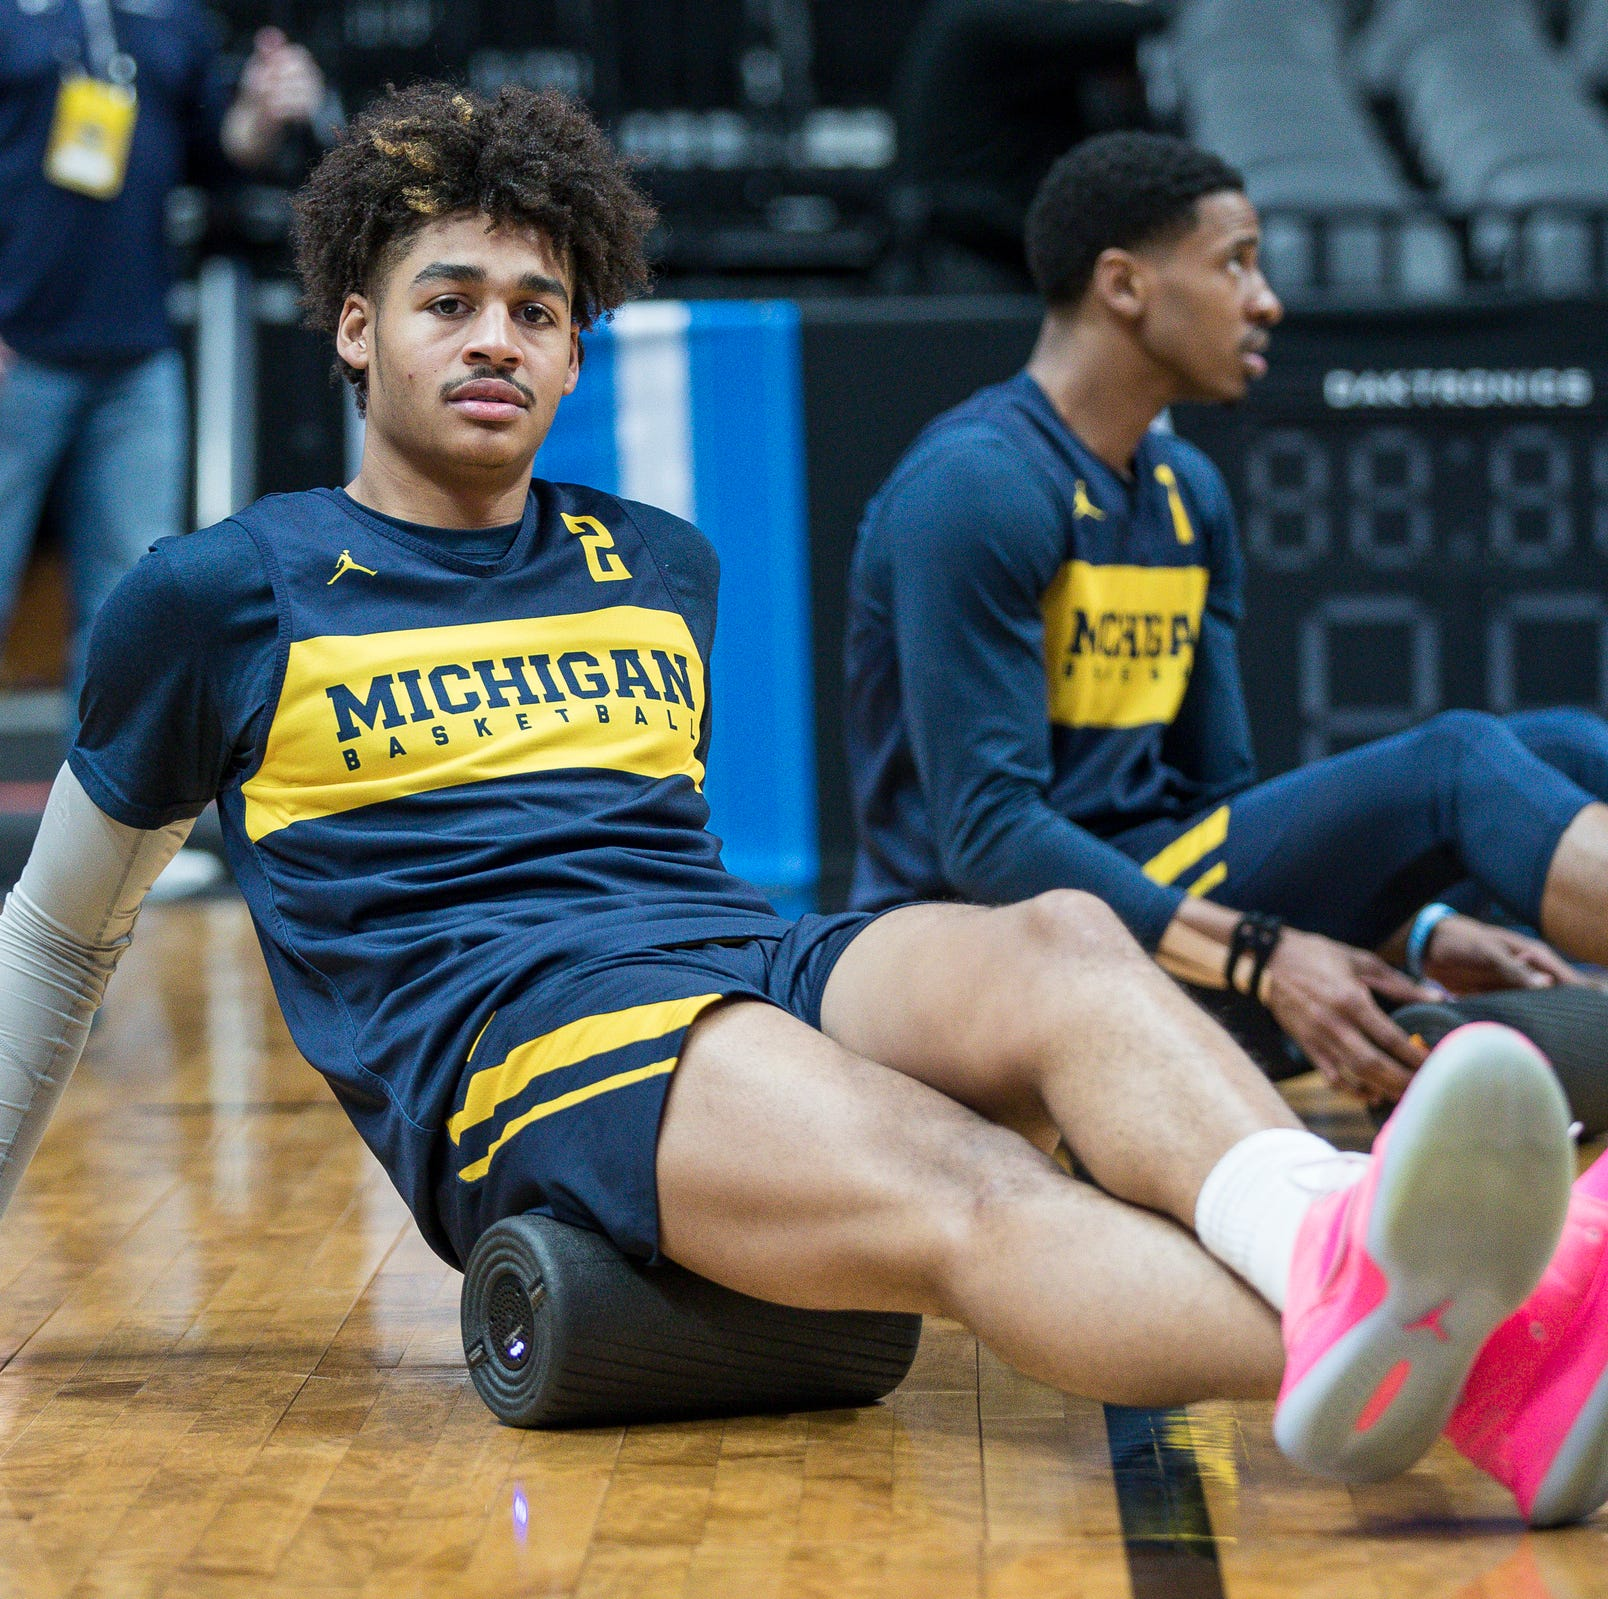 Michigan basketball's Jordan Poole appears to be selling video messages